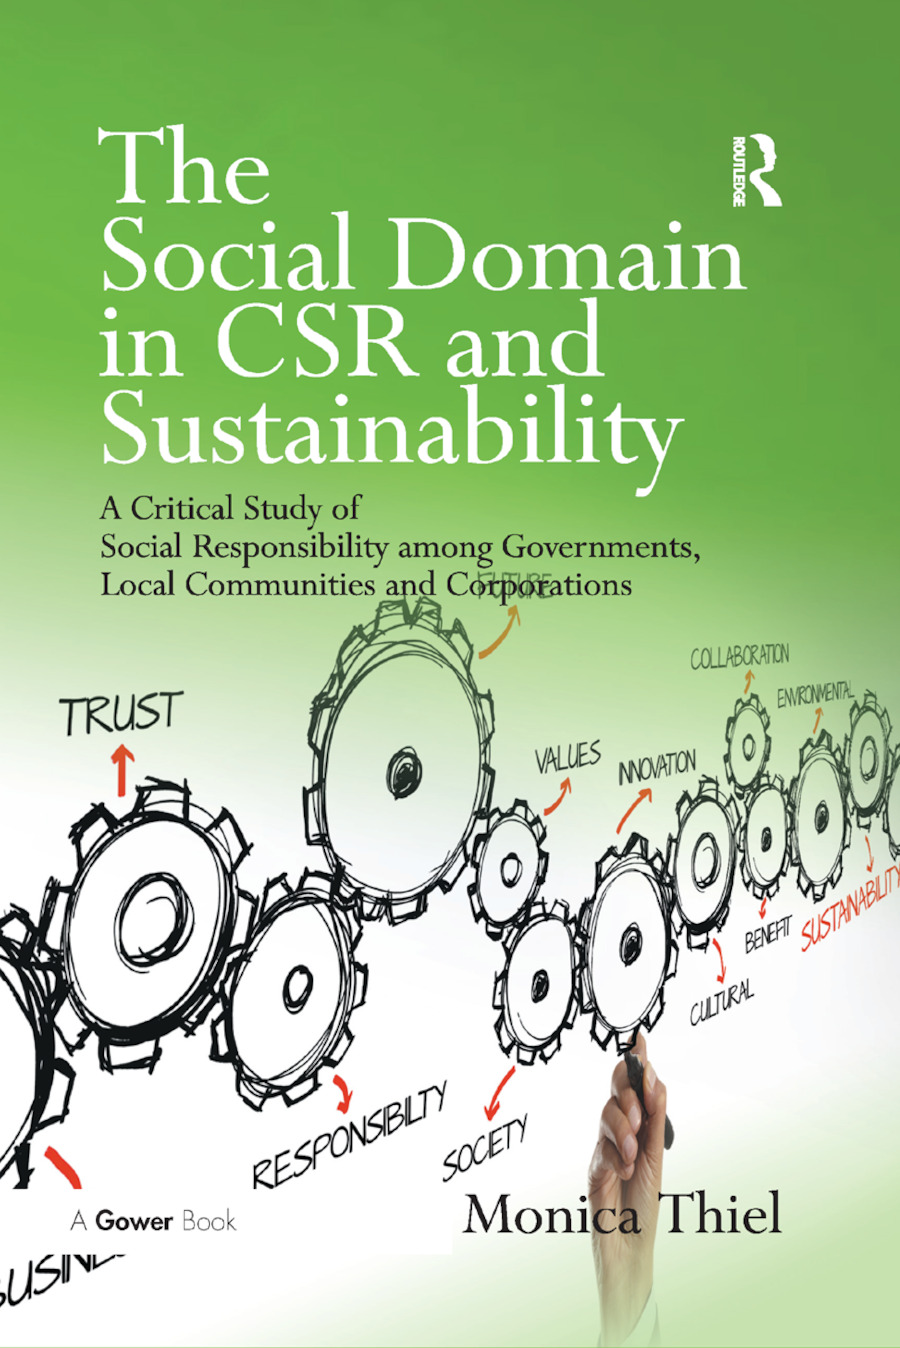 The Social Domain in CSR and Sustainability: A Critical Study of Social Responsibility among Governments, Local Communities and Corporations book cover